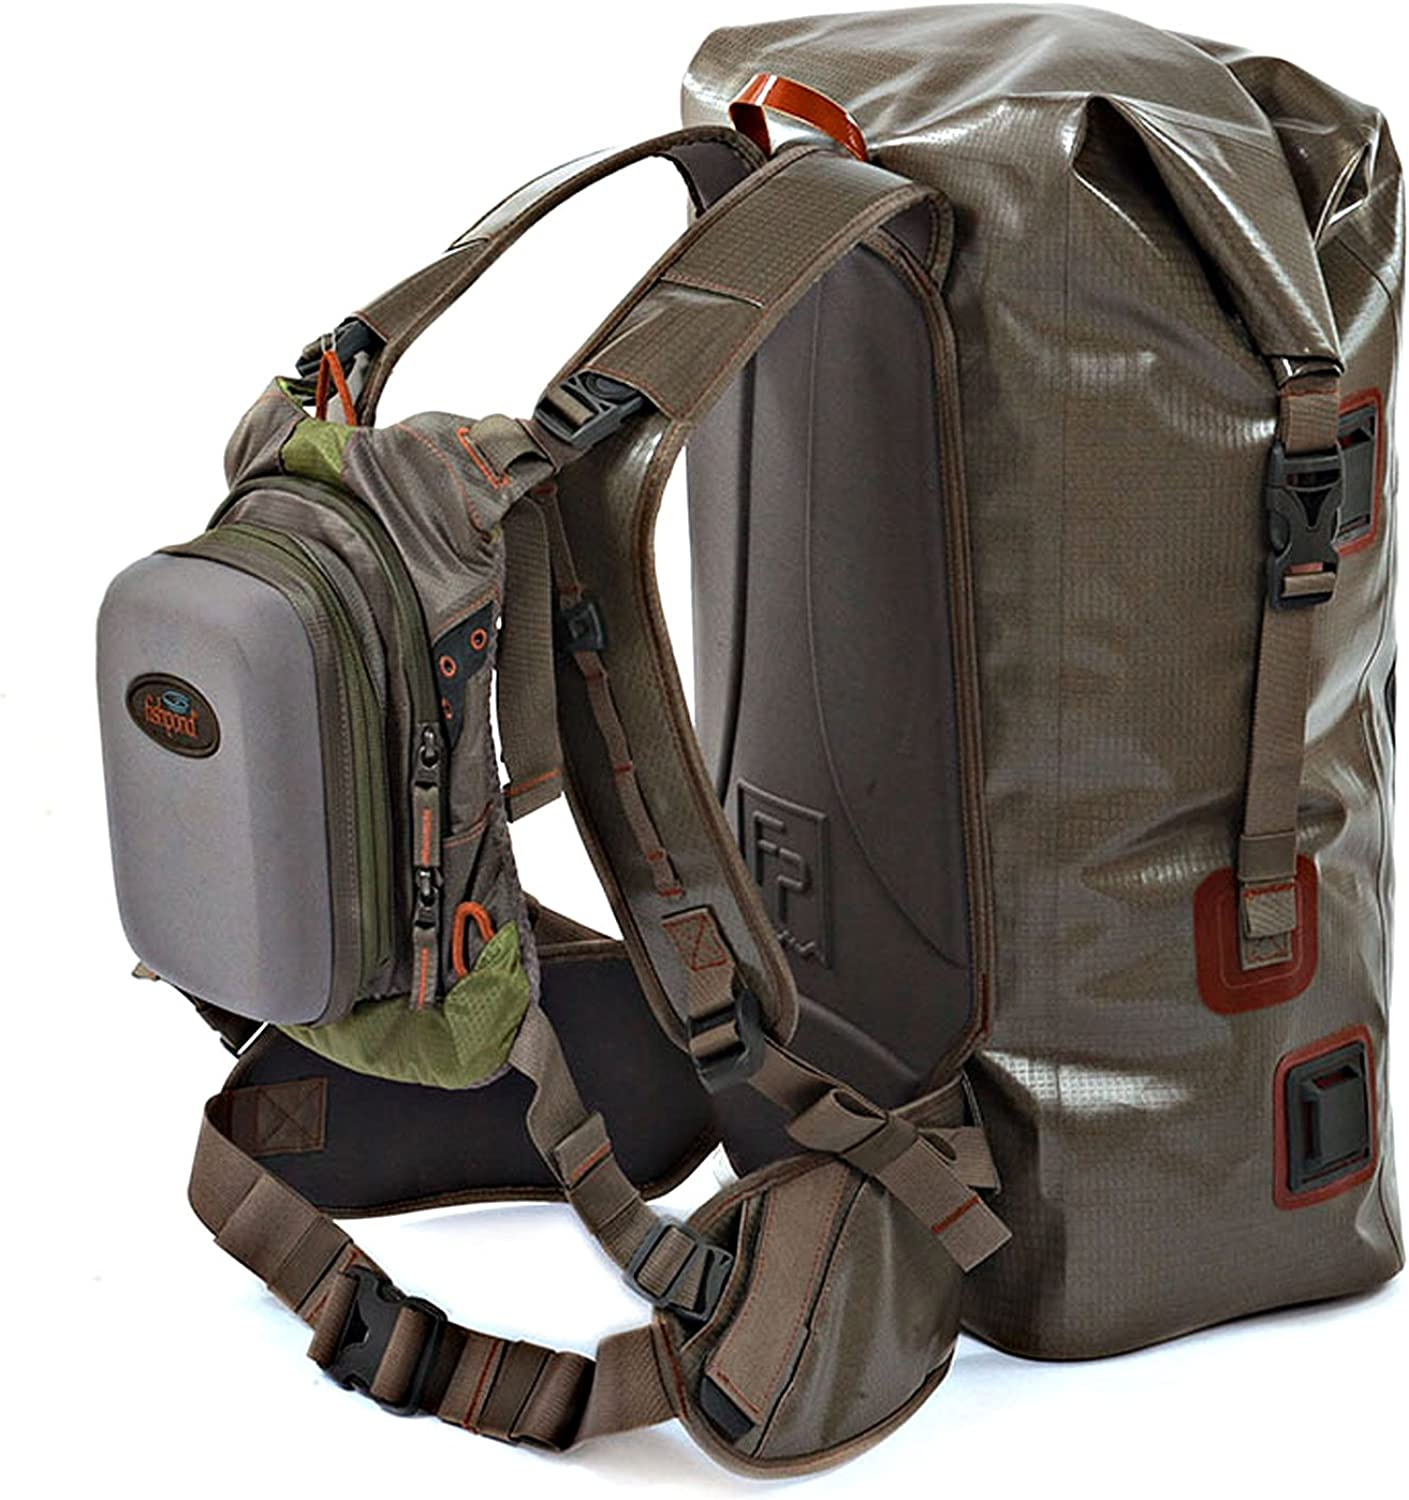 Gerry Outdoor Marine Chaffee Heathered Roll Top Backpack